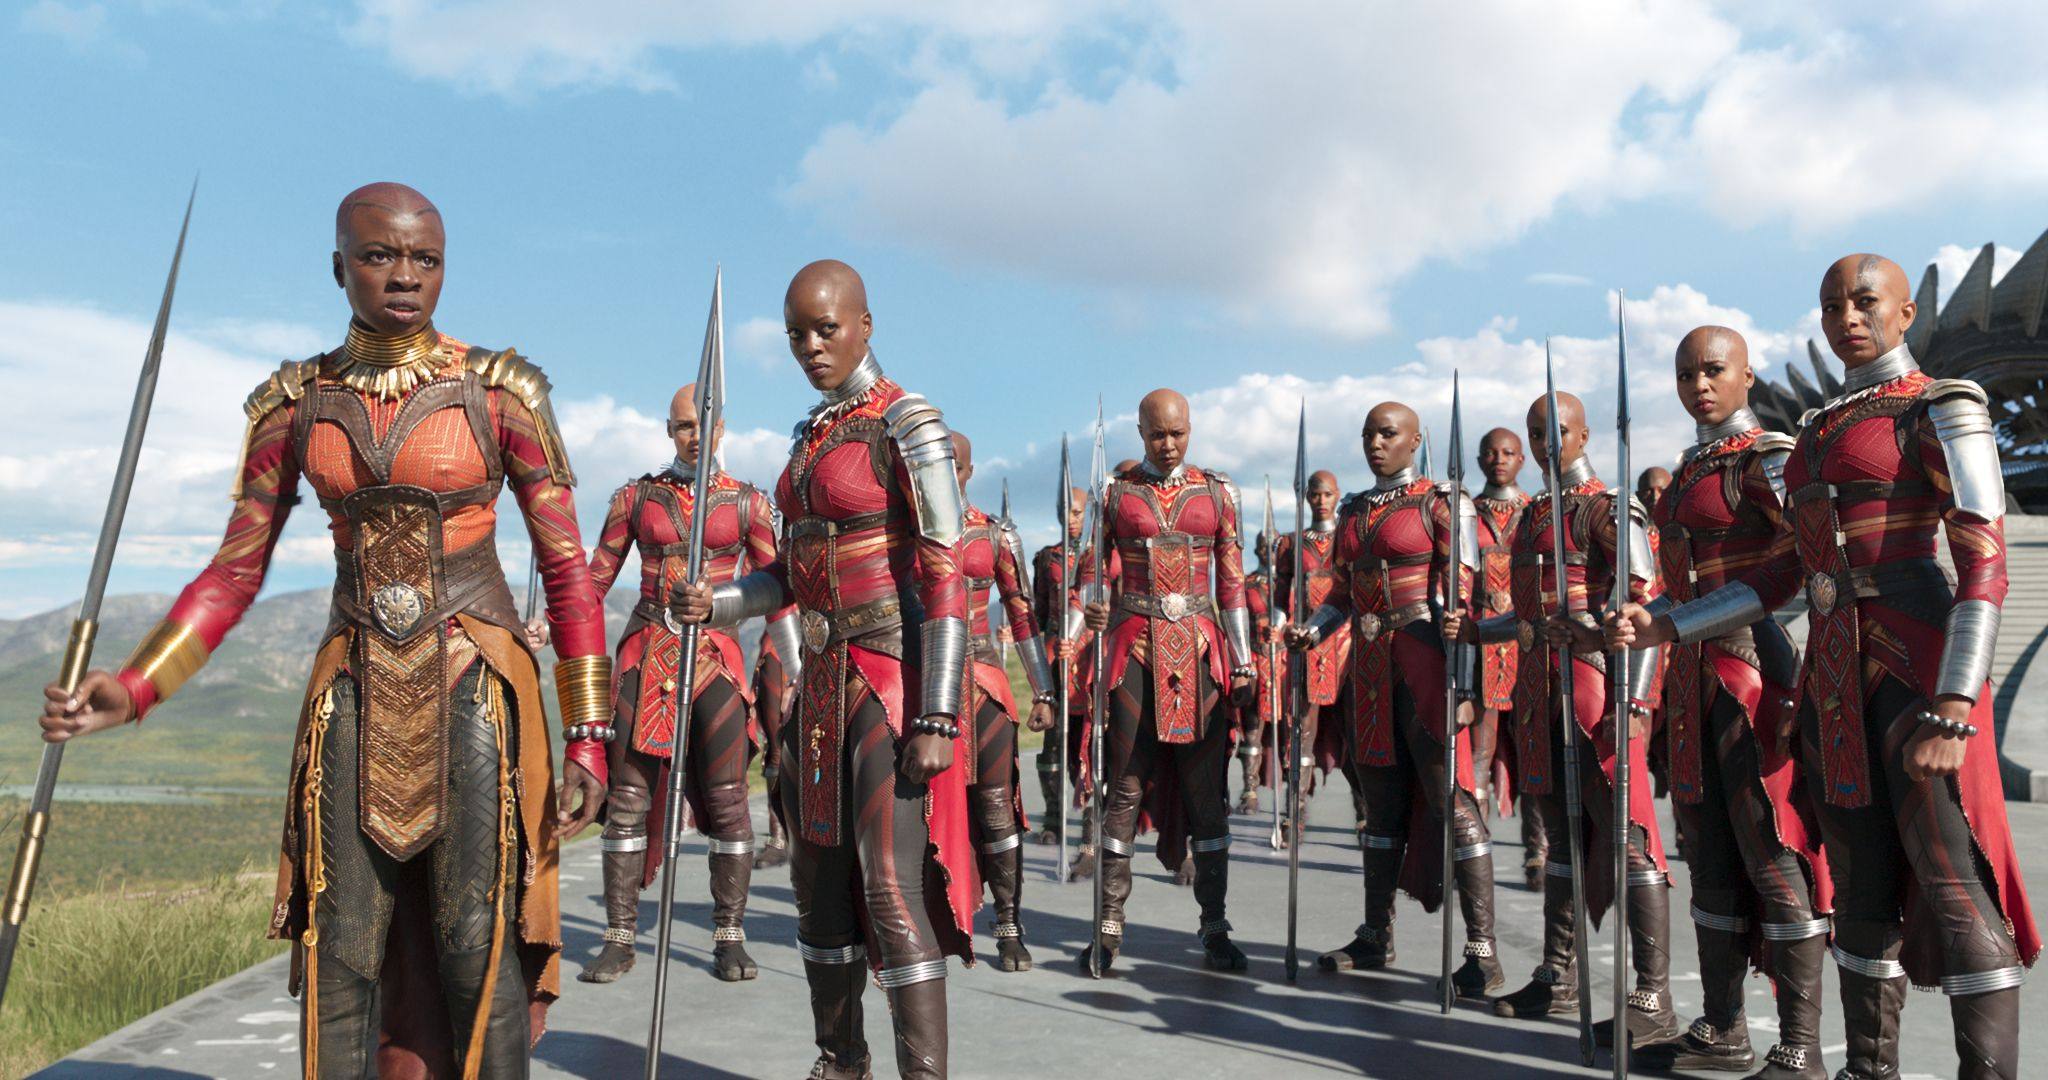 Marvel's Black Panther scores huge second weekend, passes $700 million worldwide